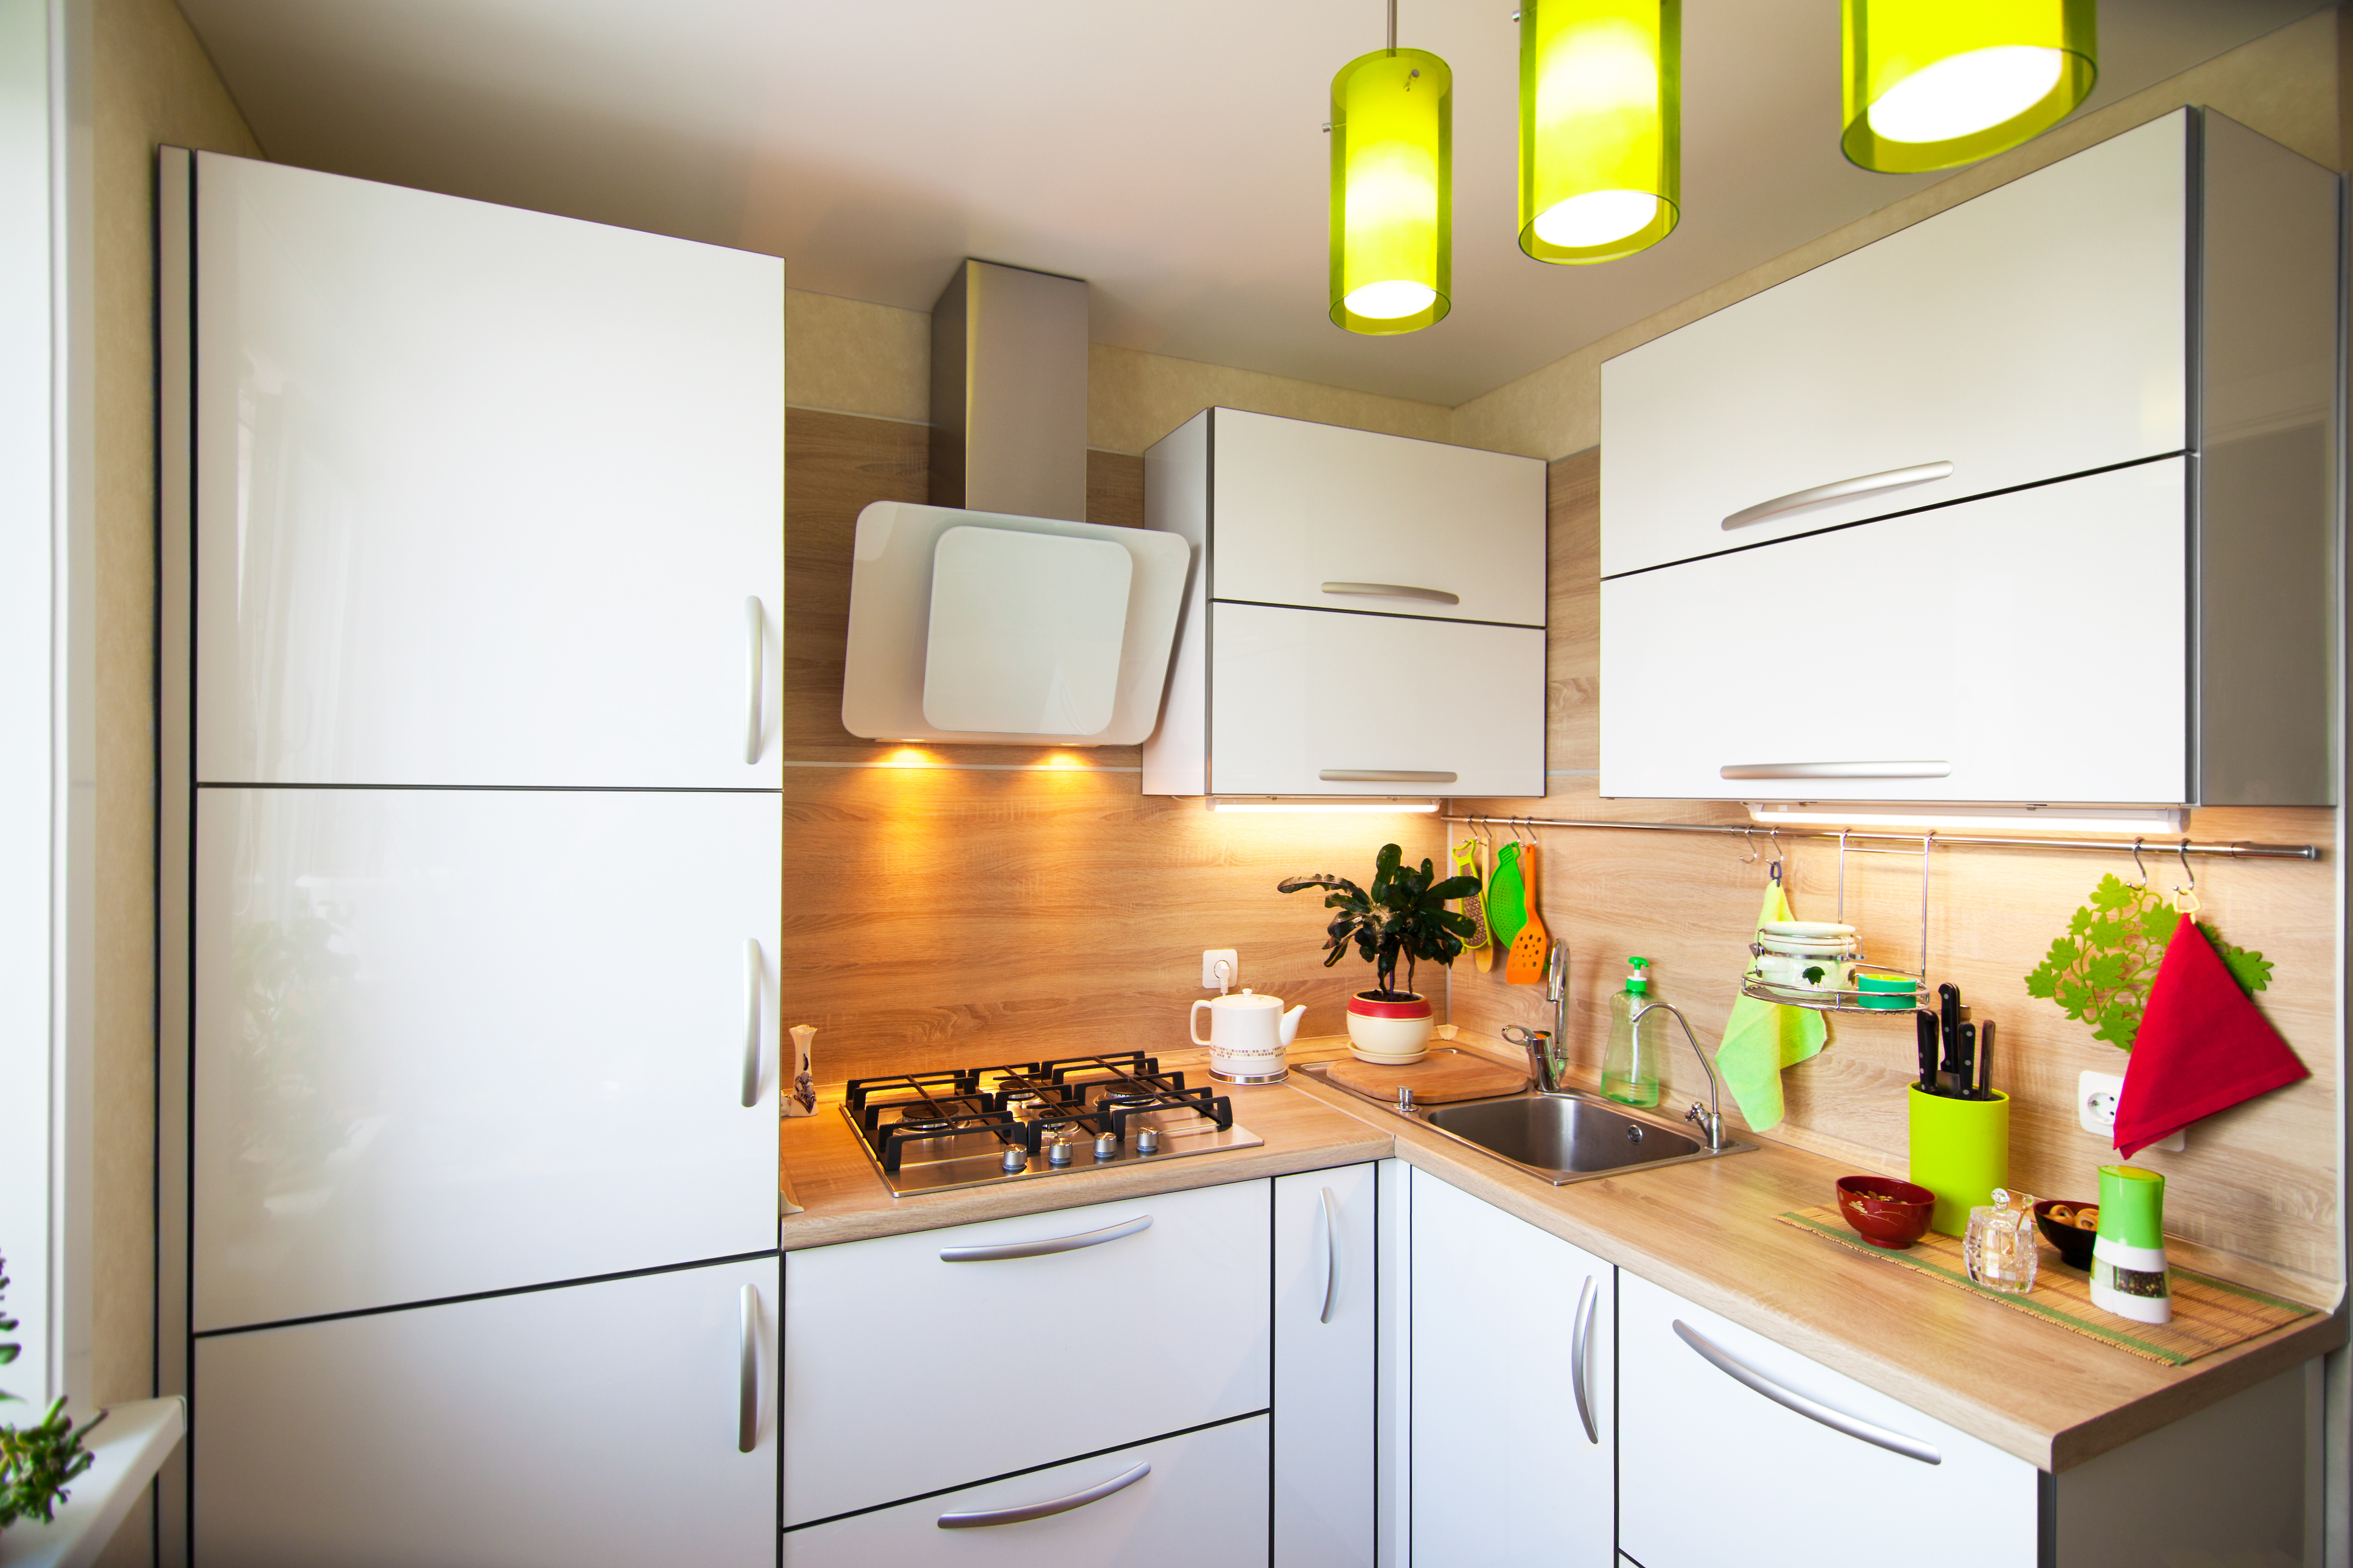 Practical tips for small kitchens techtalk - Practical home tips easy solutions ...